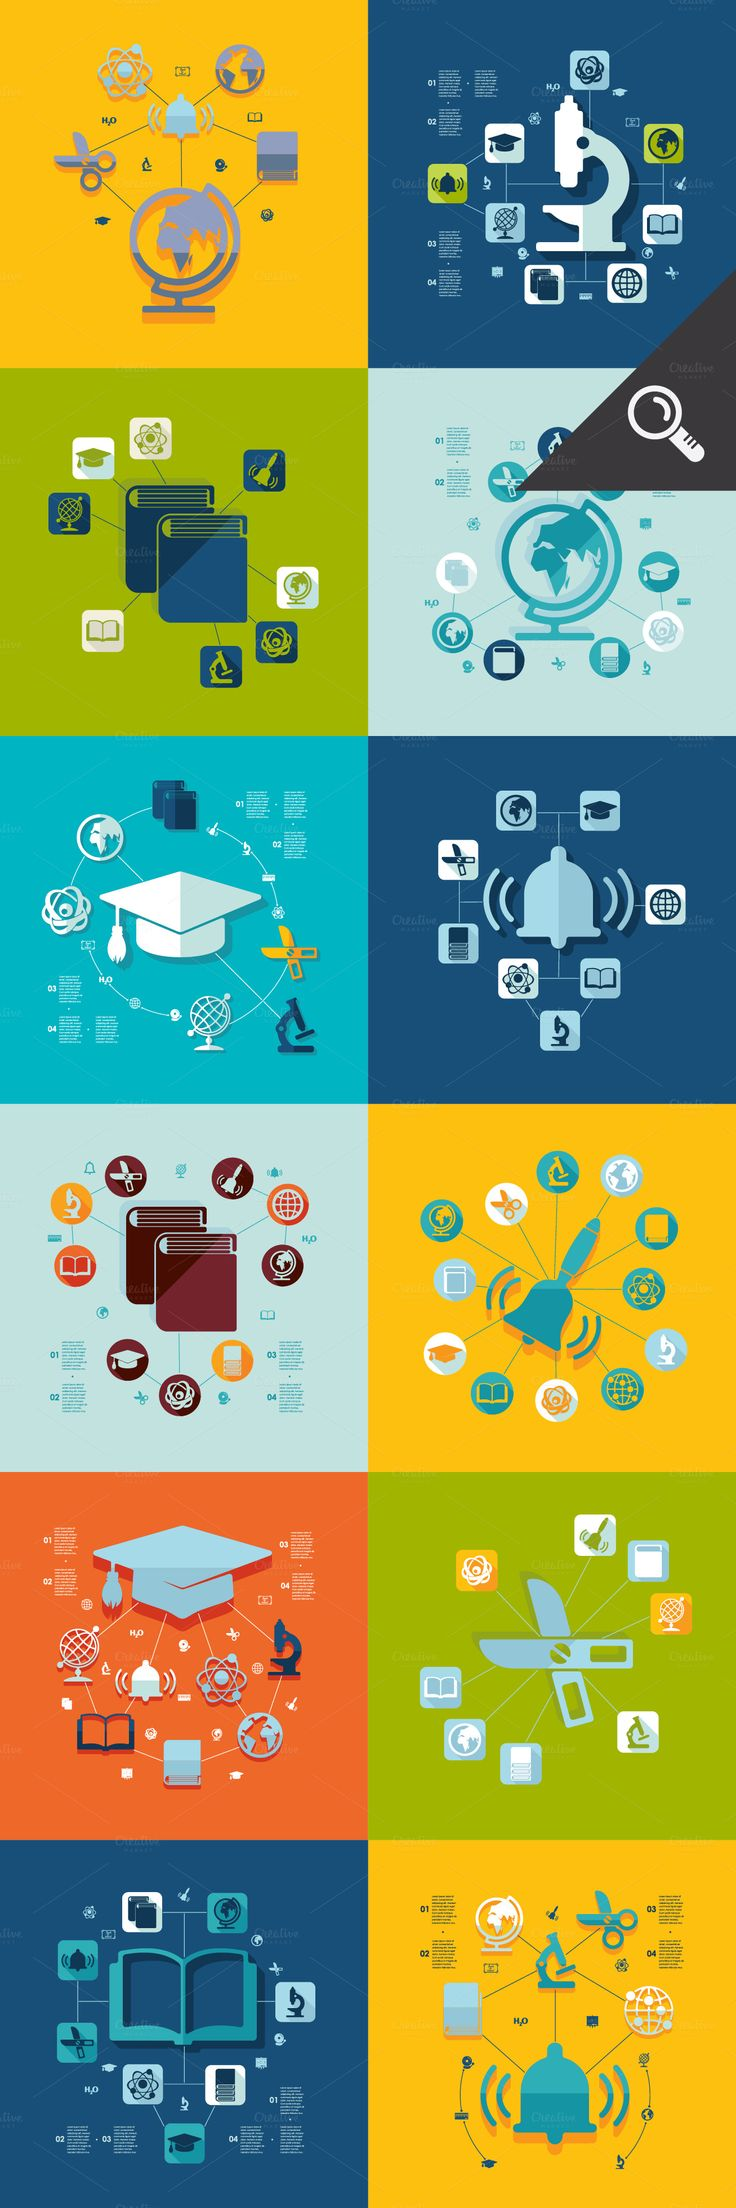 FREE THIS WEEK: 44 education-related graphics